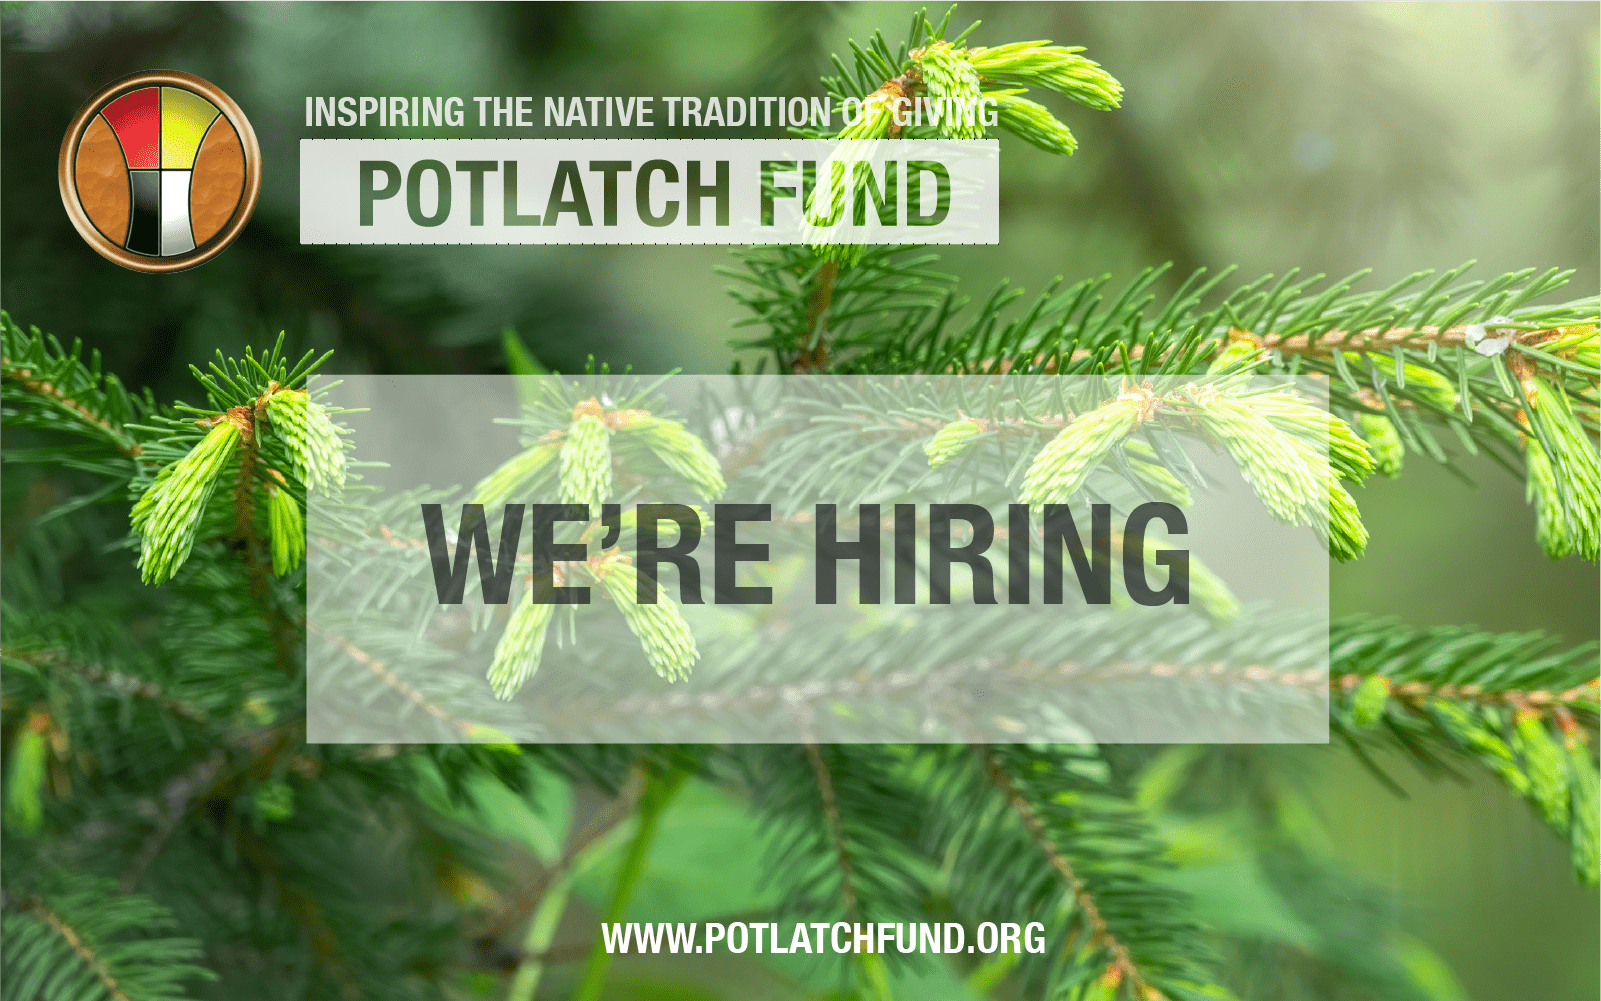 Potlatch Fund is Hiring